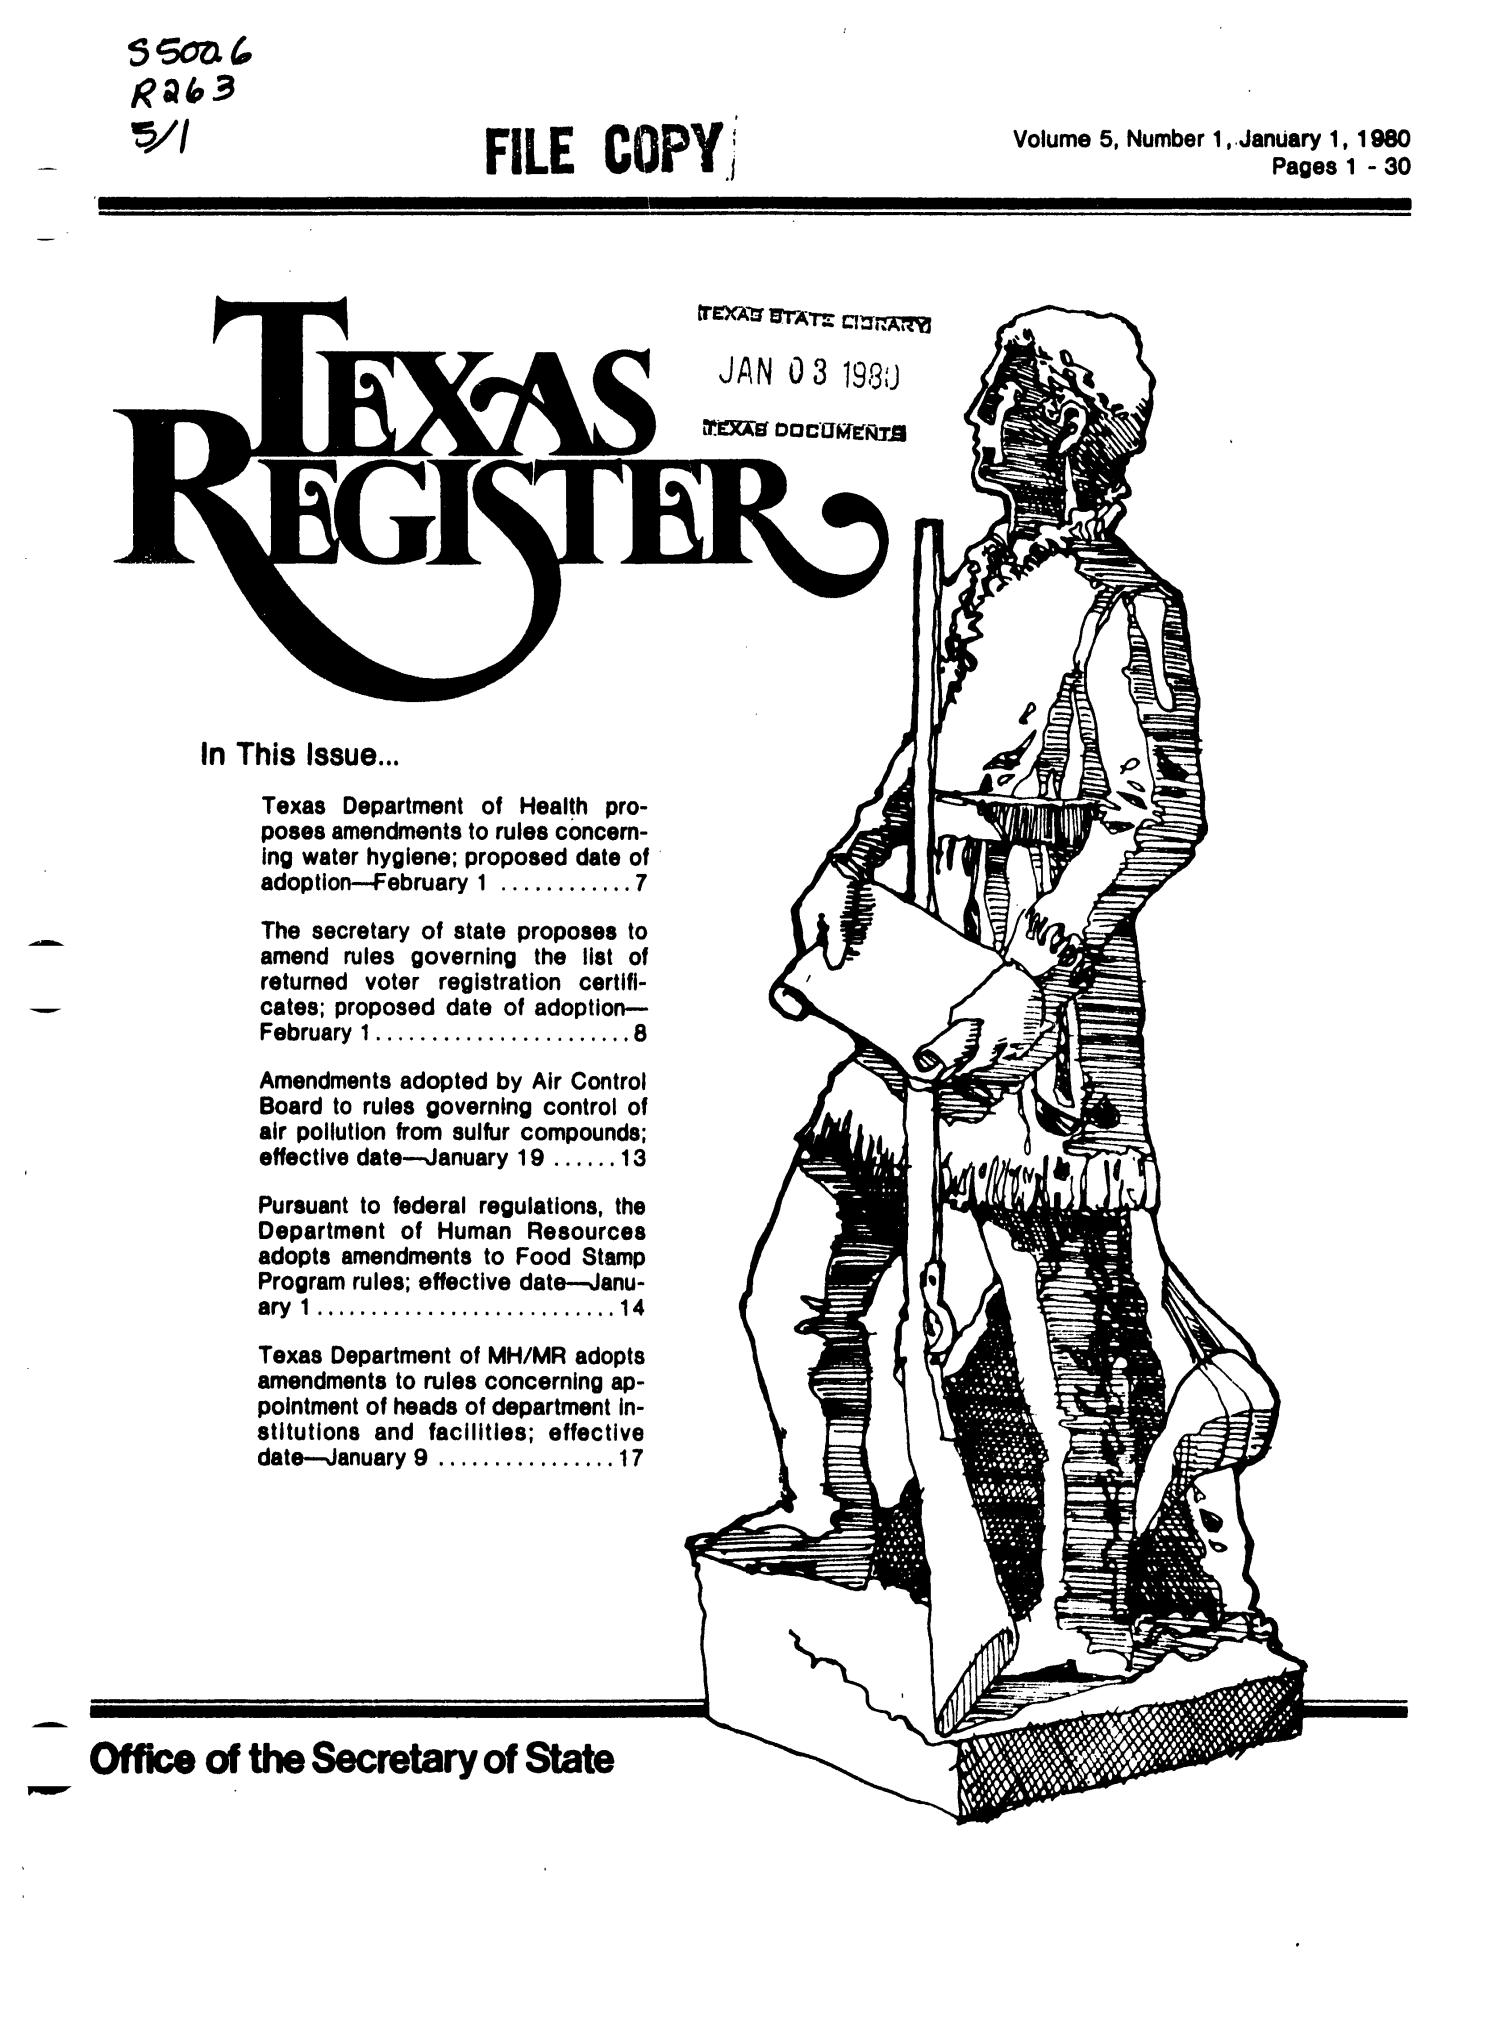 Texas Register, Volume 5, Number 1, Pages 1-30, January 1, 1980                                                                                                      Title Page